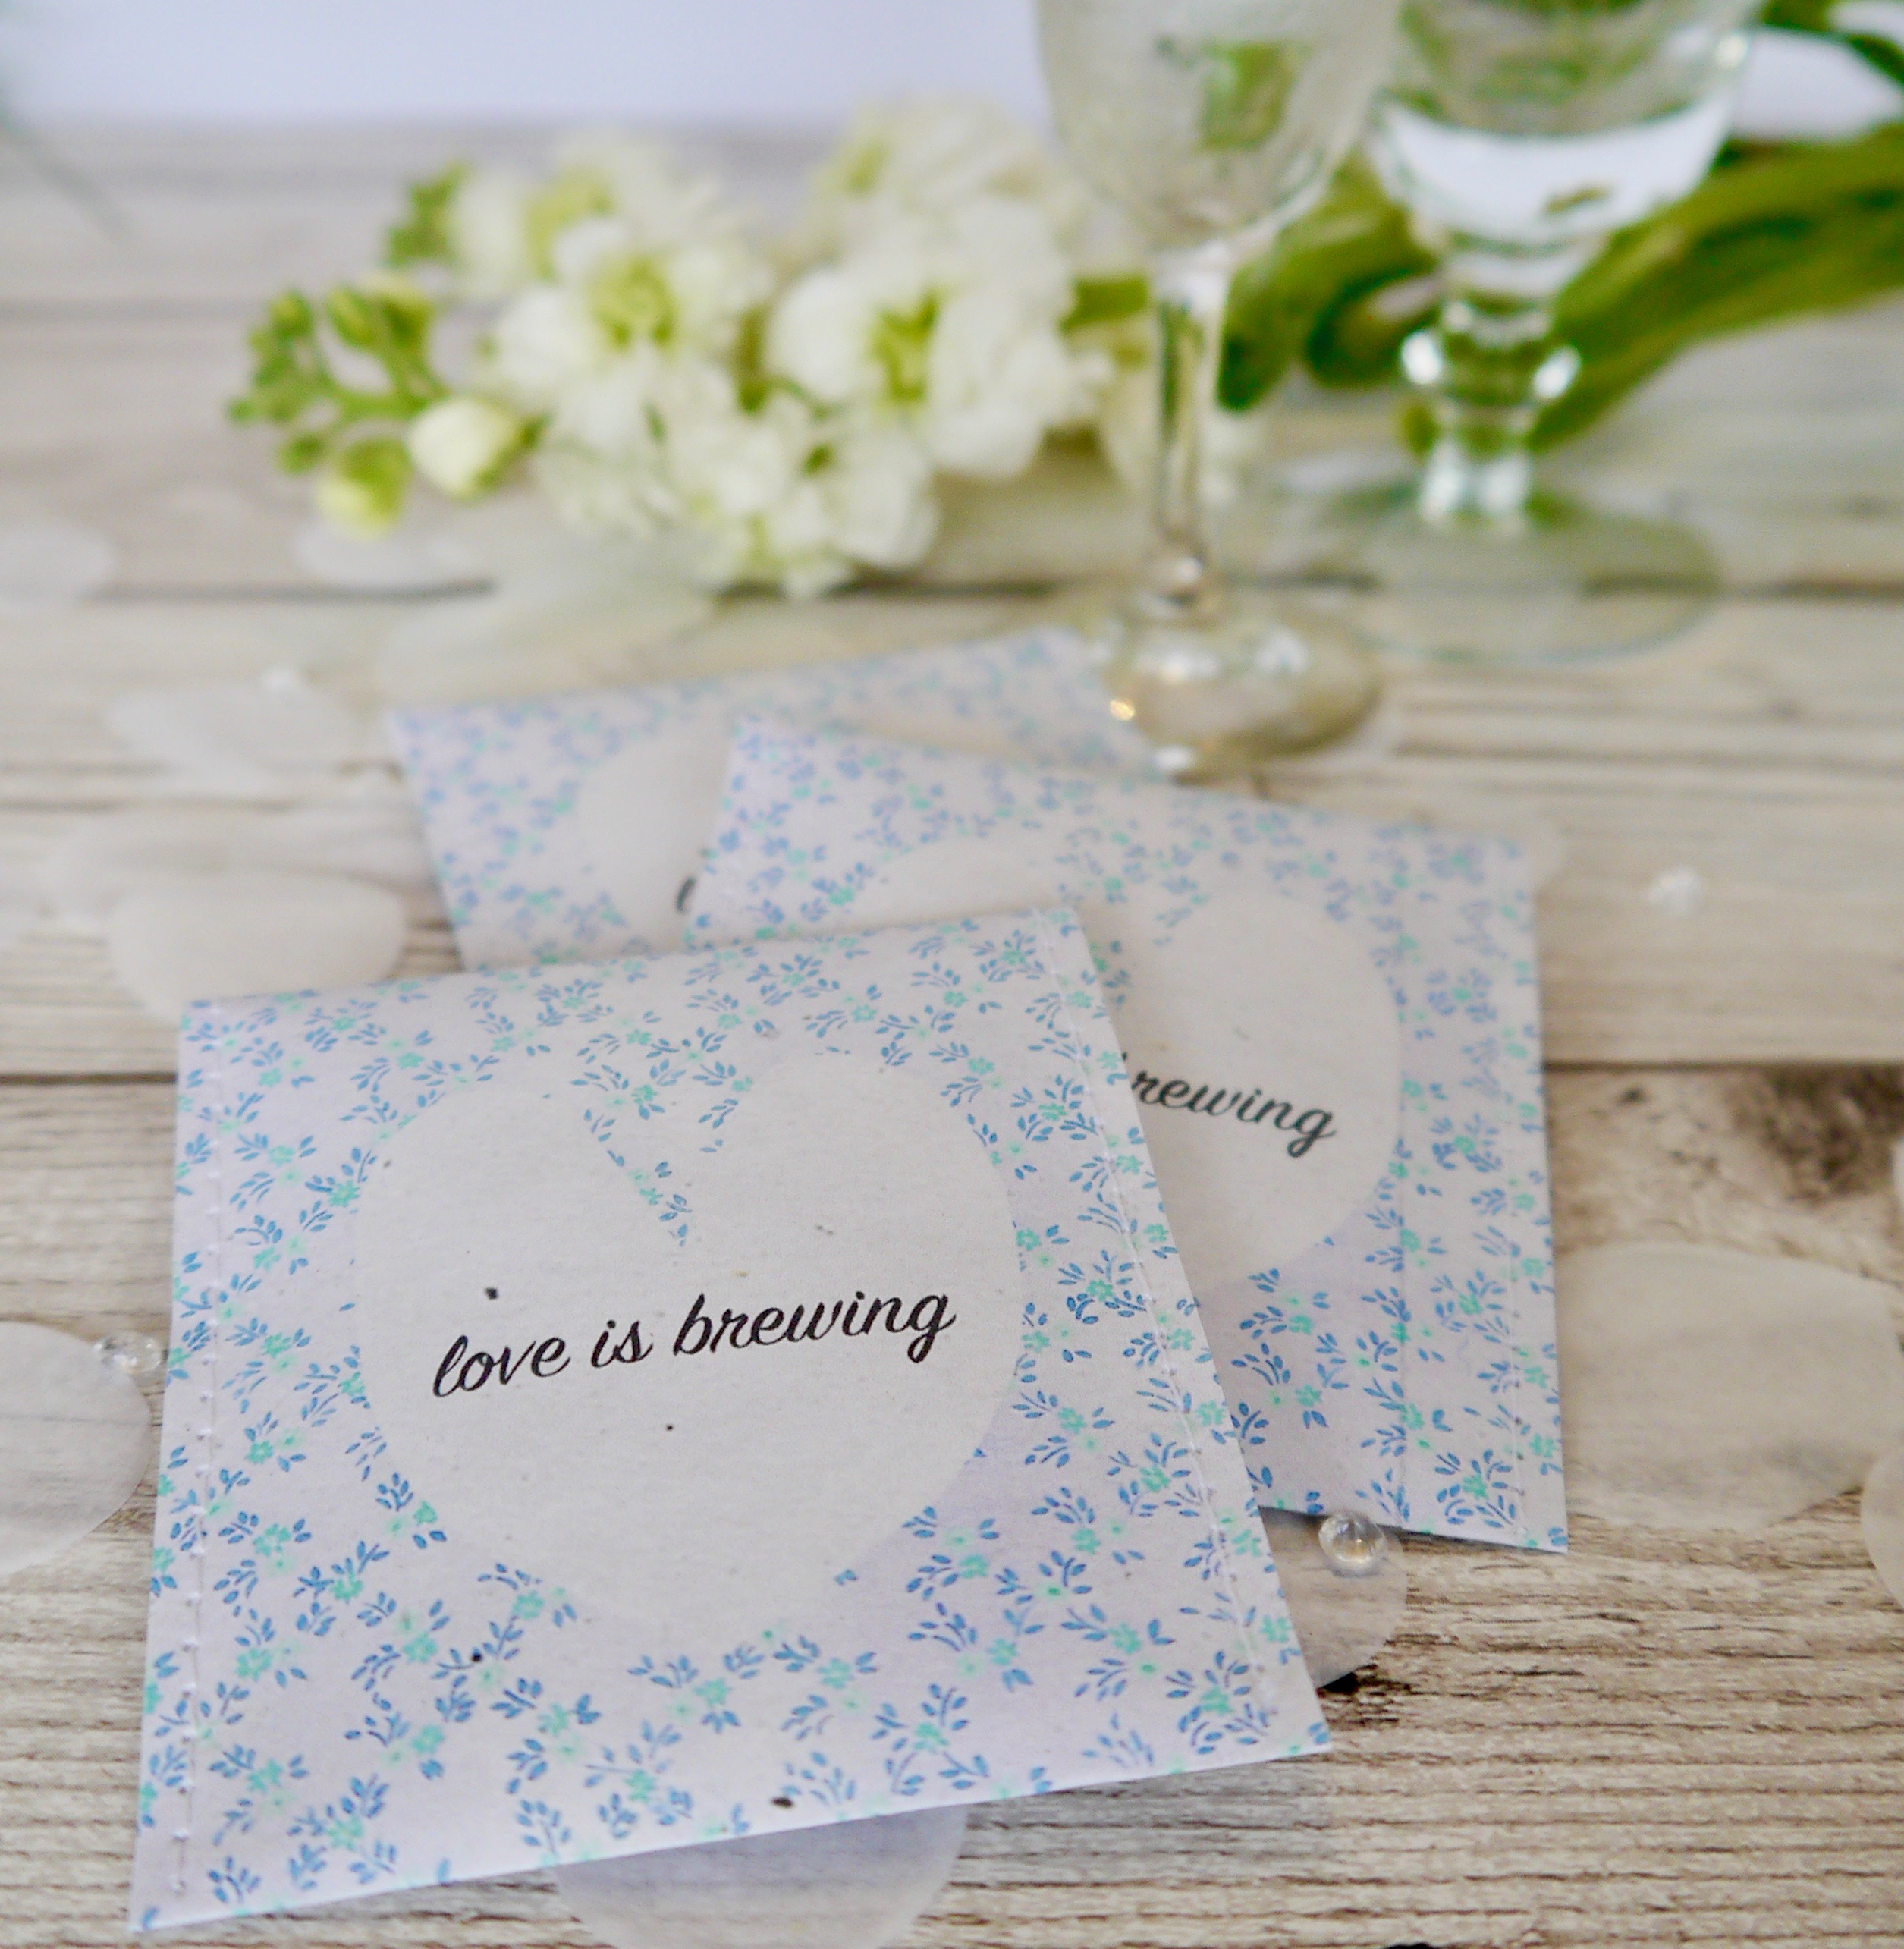 Love is brewing\' - bespoke teabag wedding favours - Victoria Mae Designs